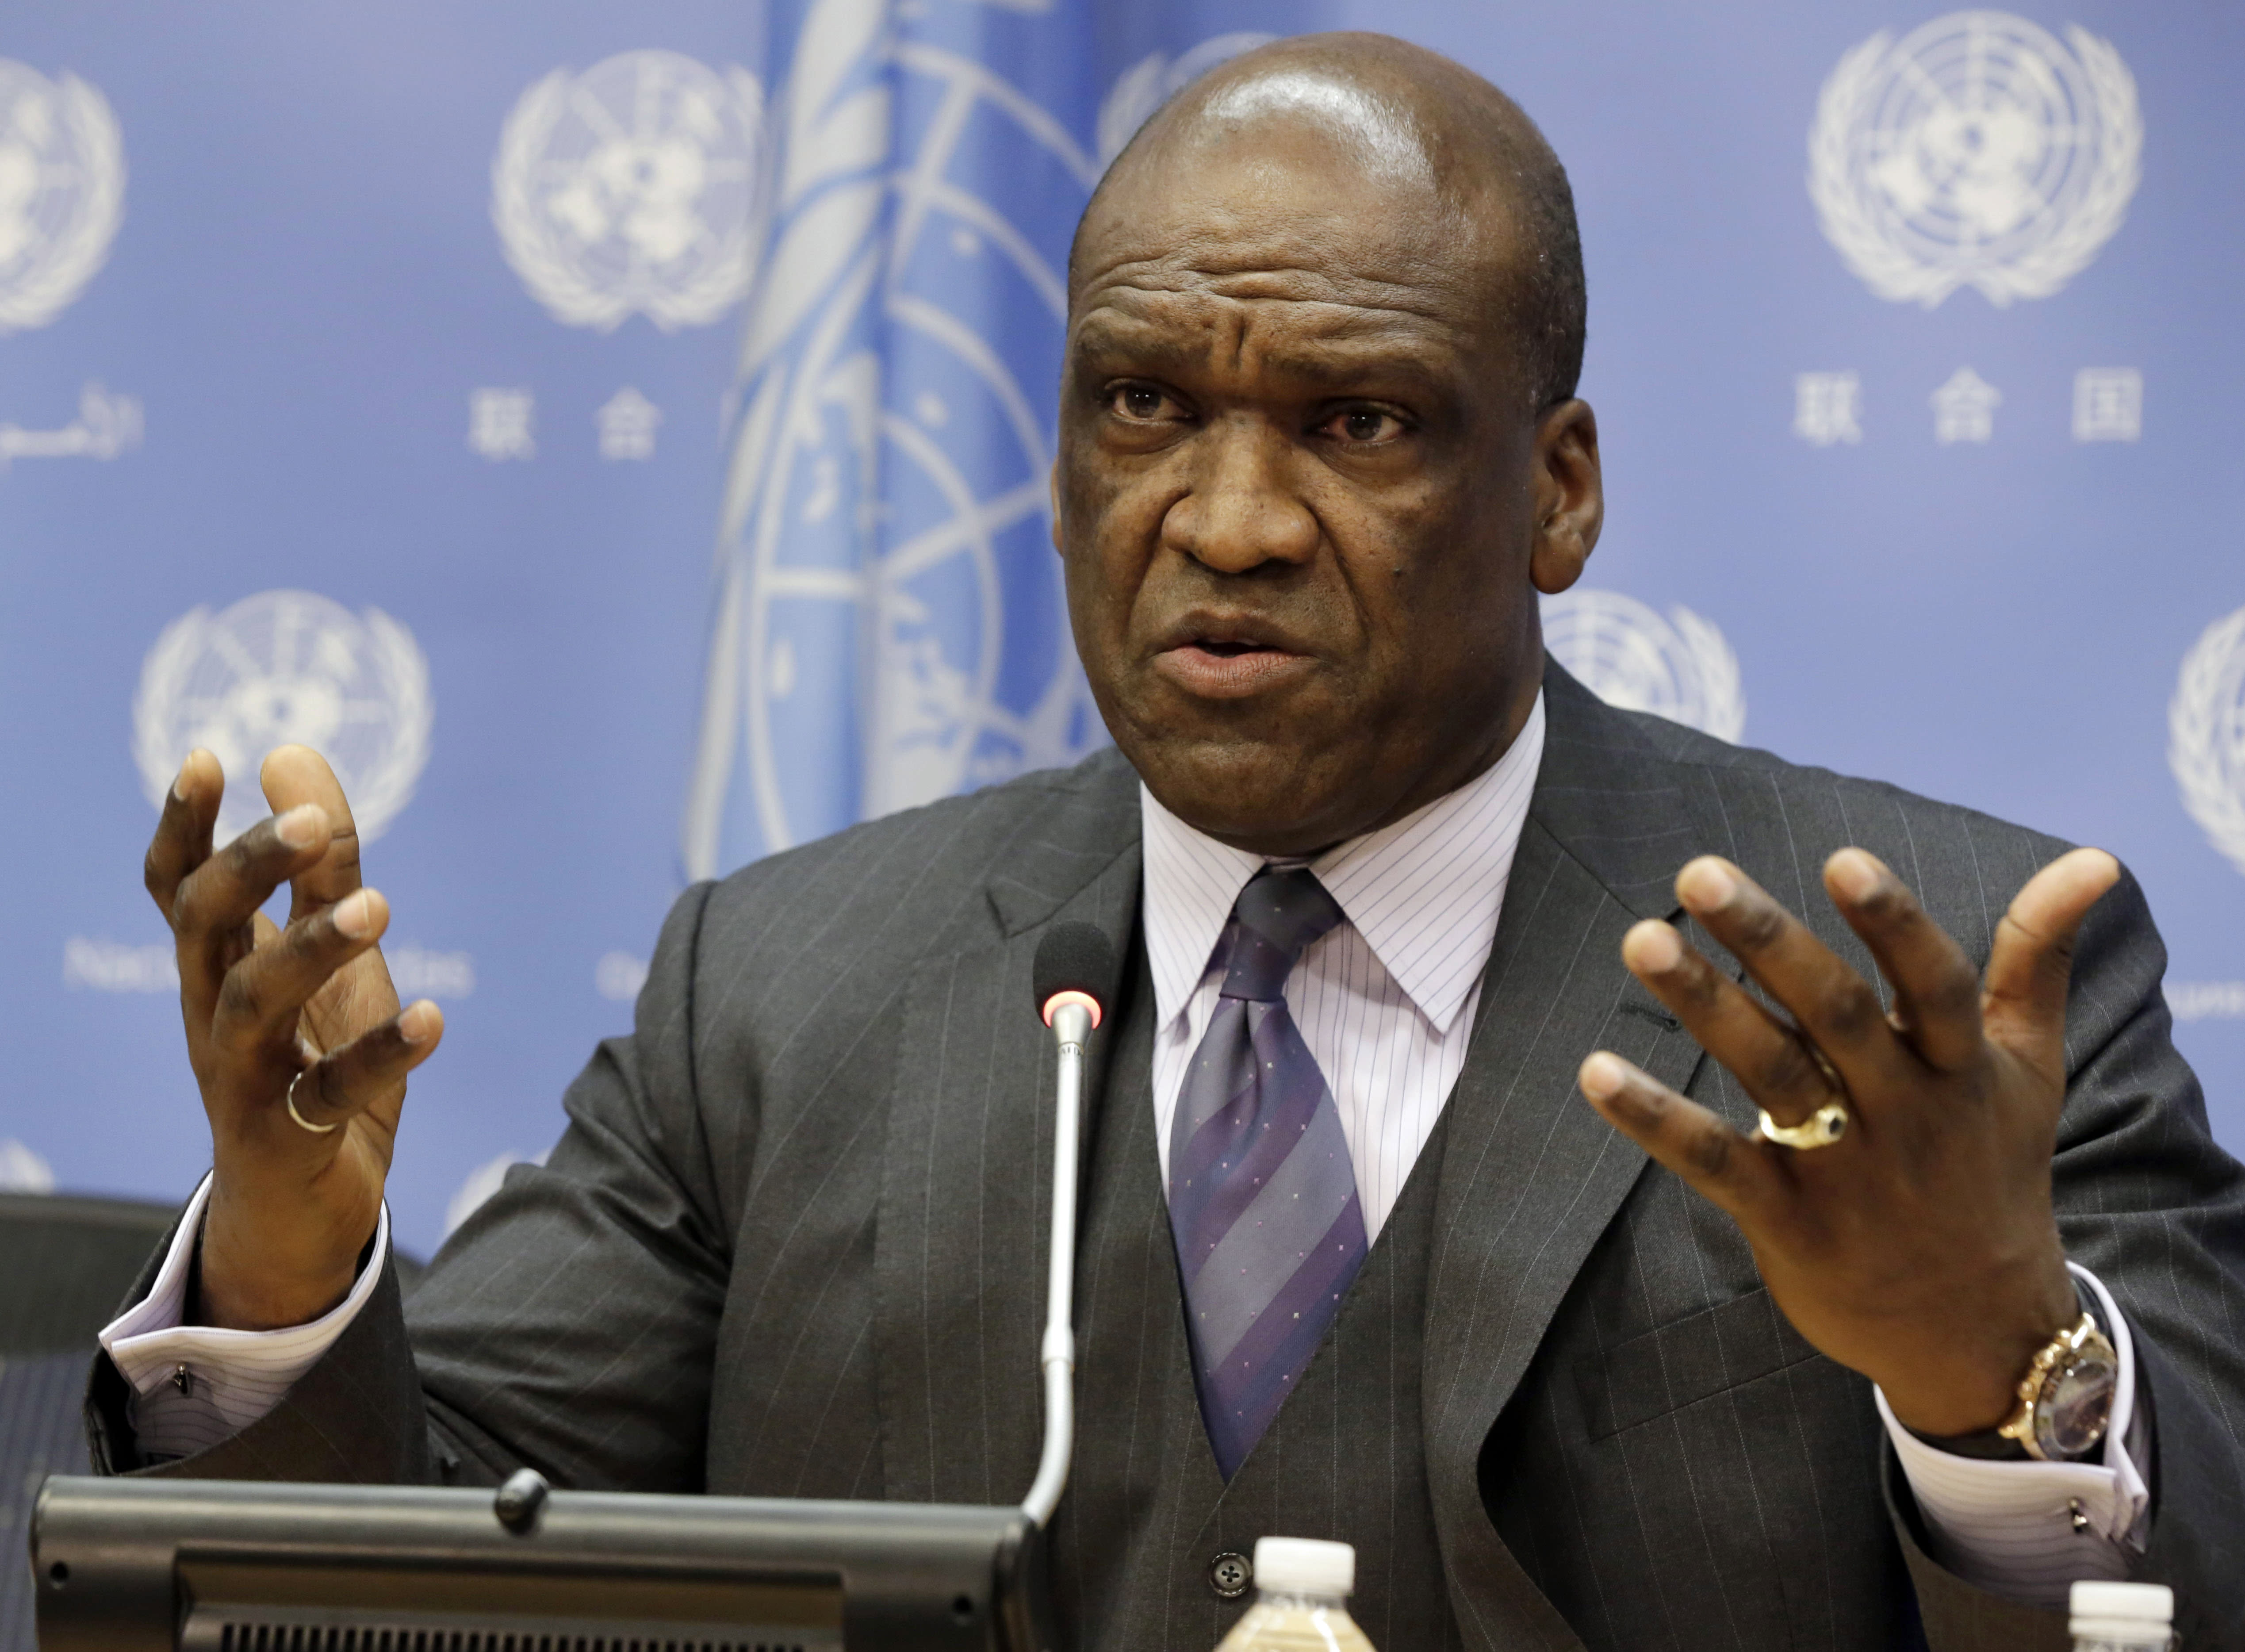 Ex-UN General Assembly head among 6 held in bribery scheme